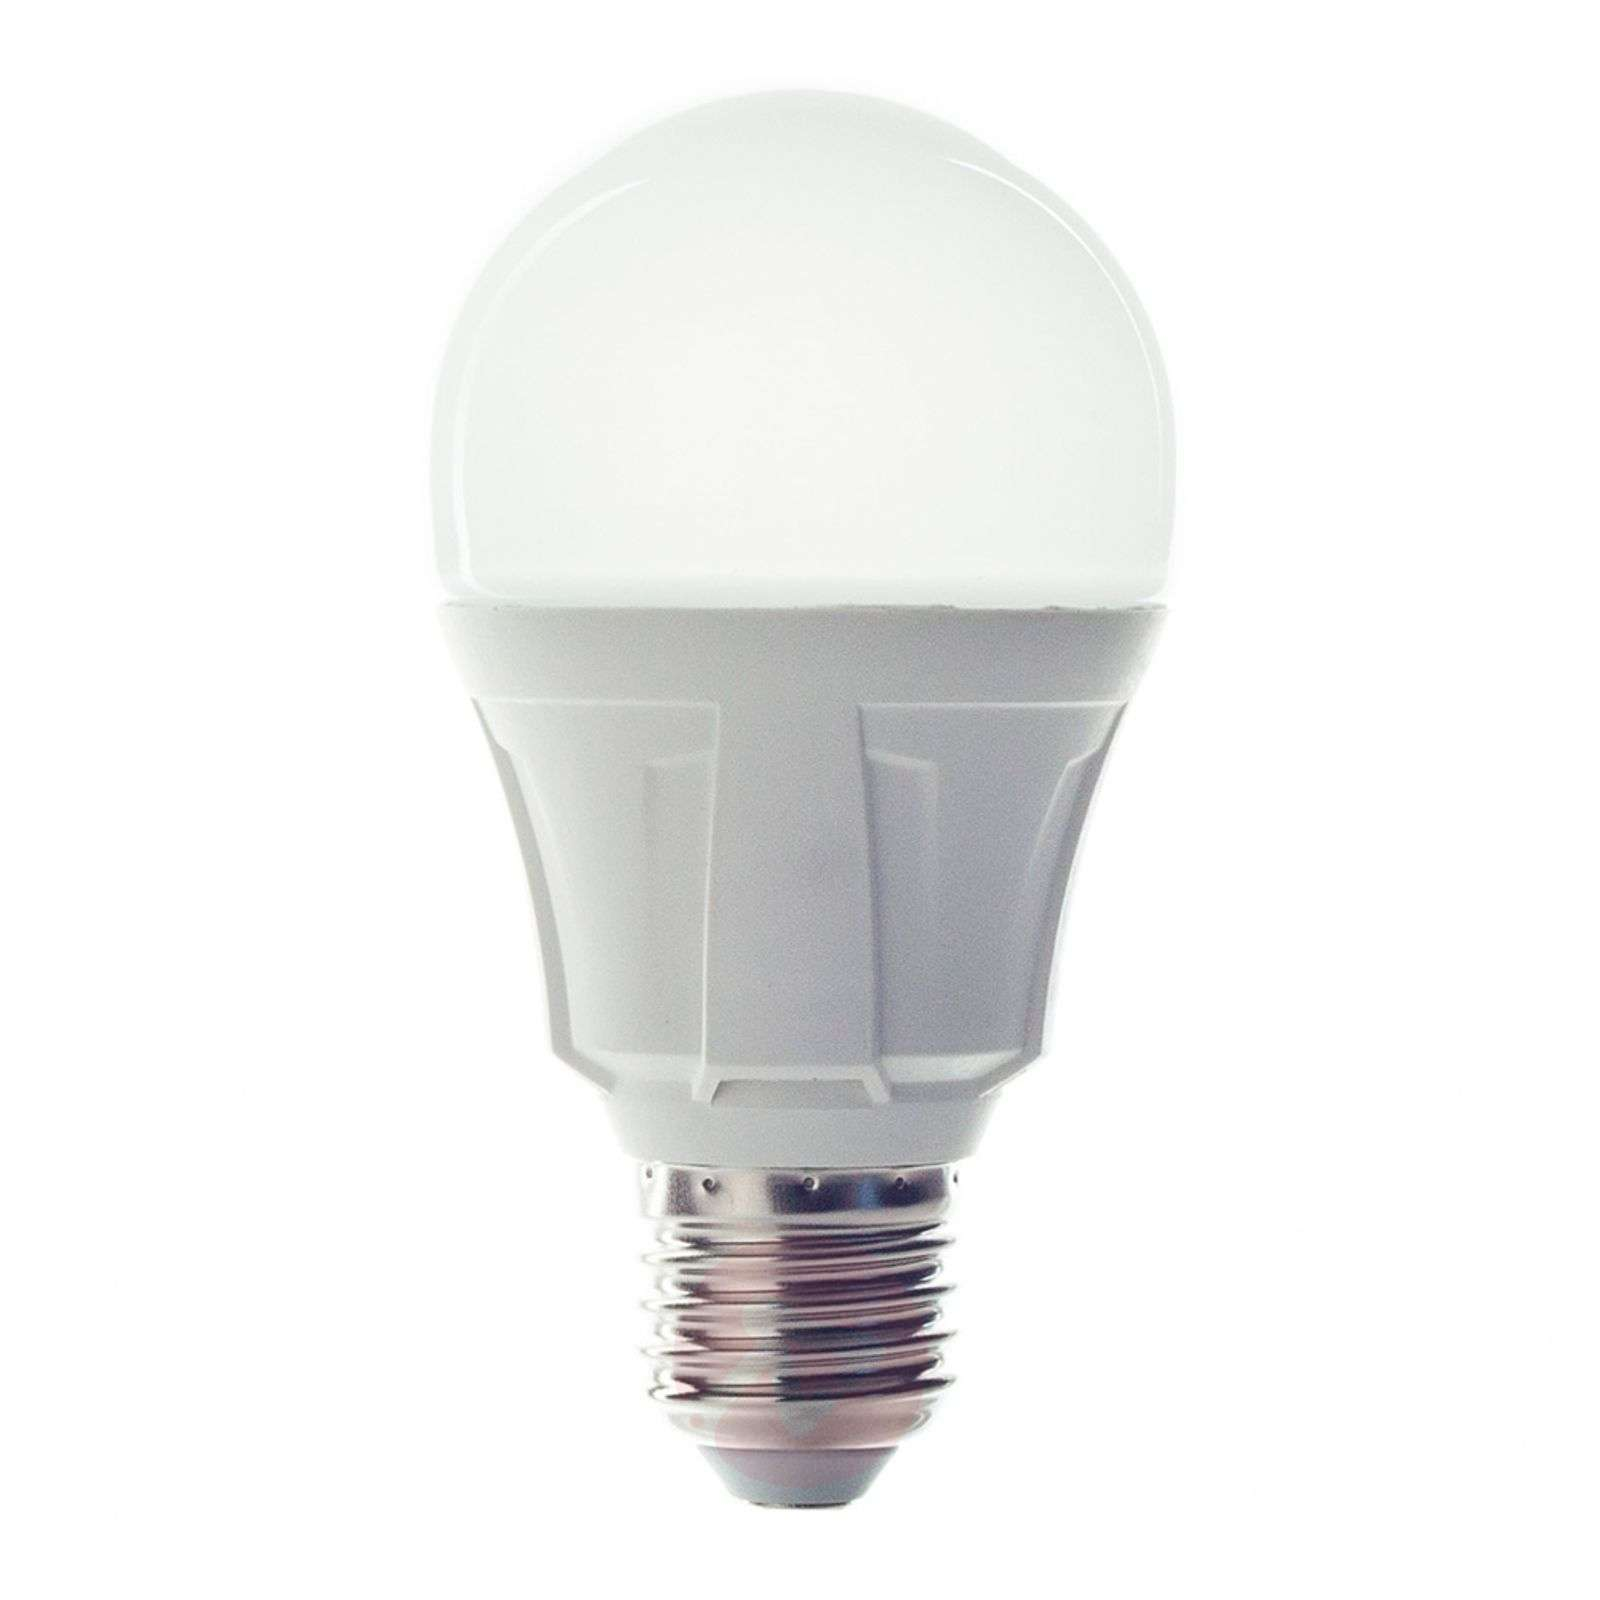 Ampoule LED E27 9W 830 blanc chaud-9993001-02